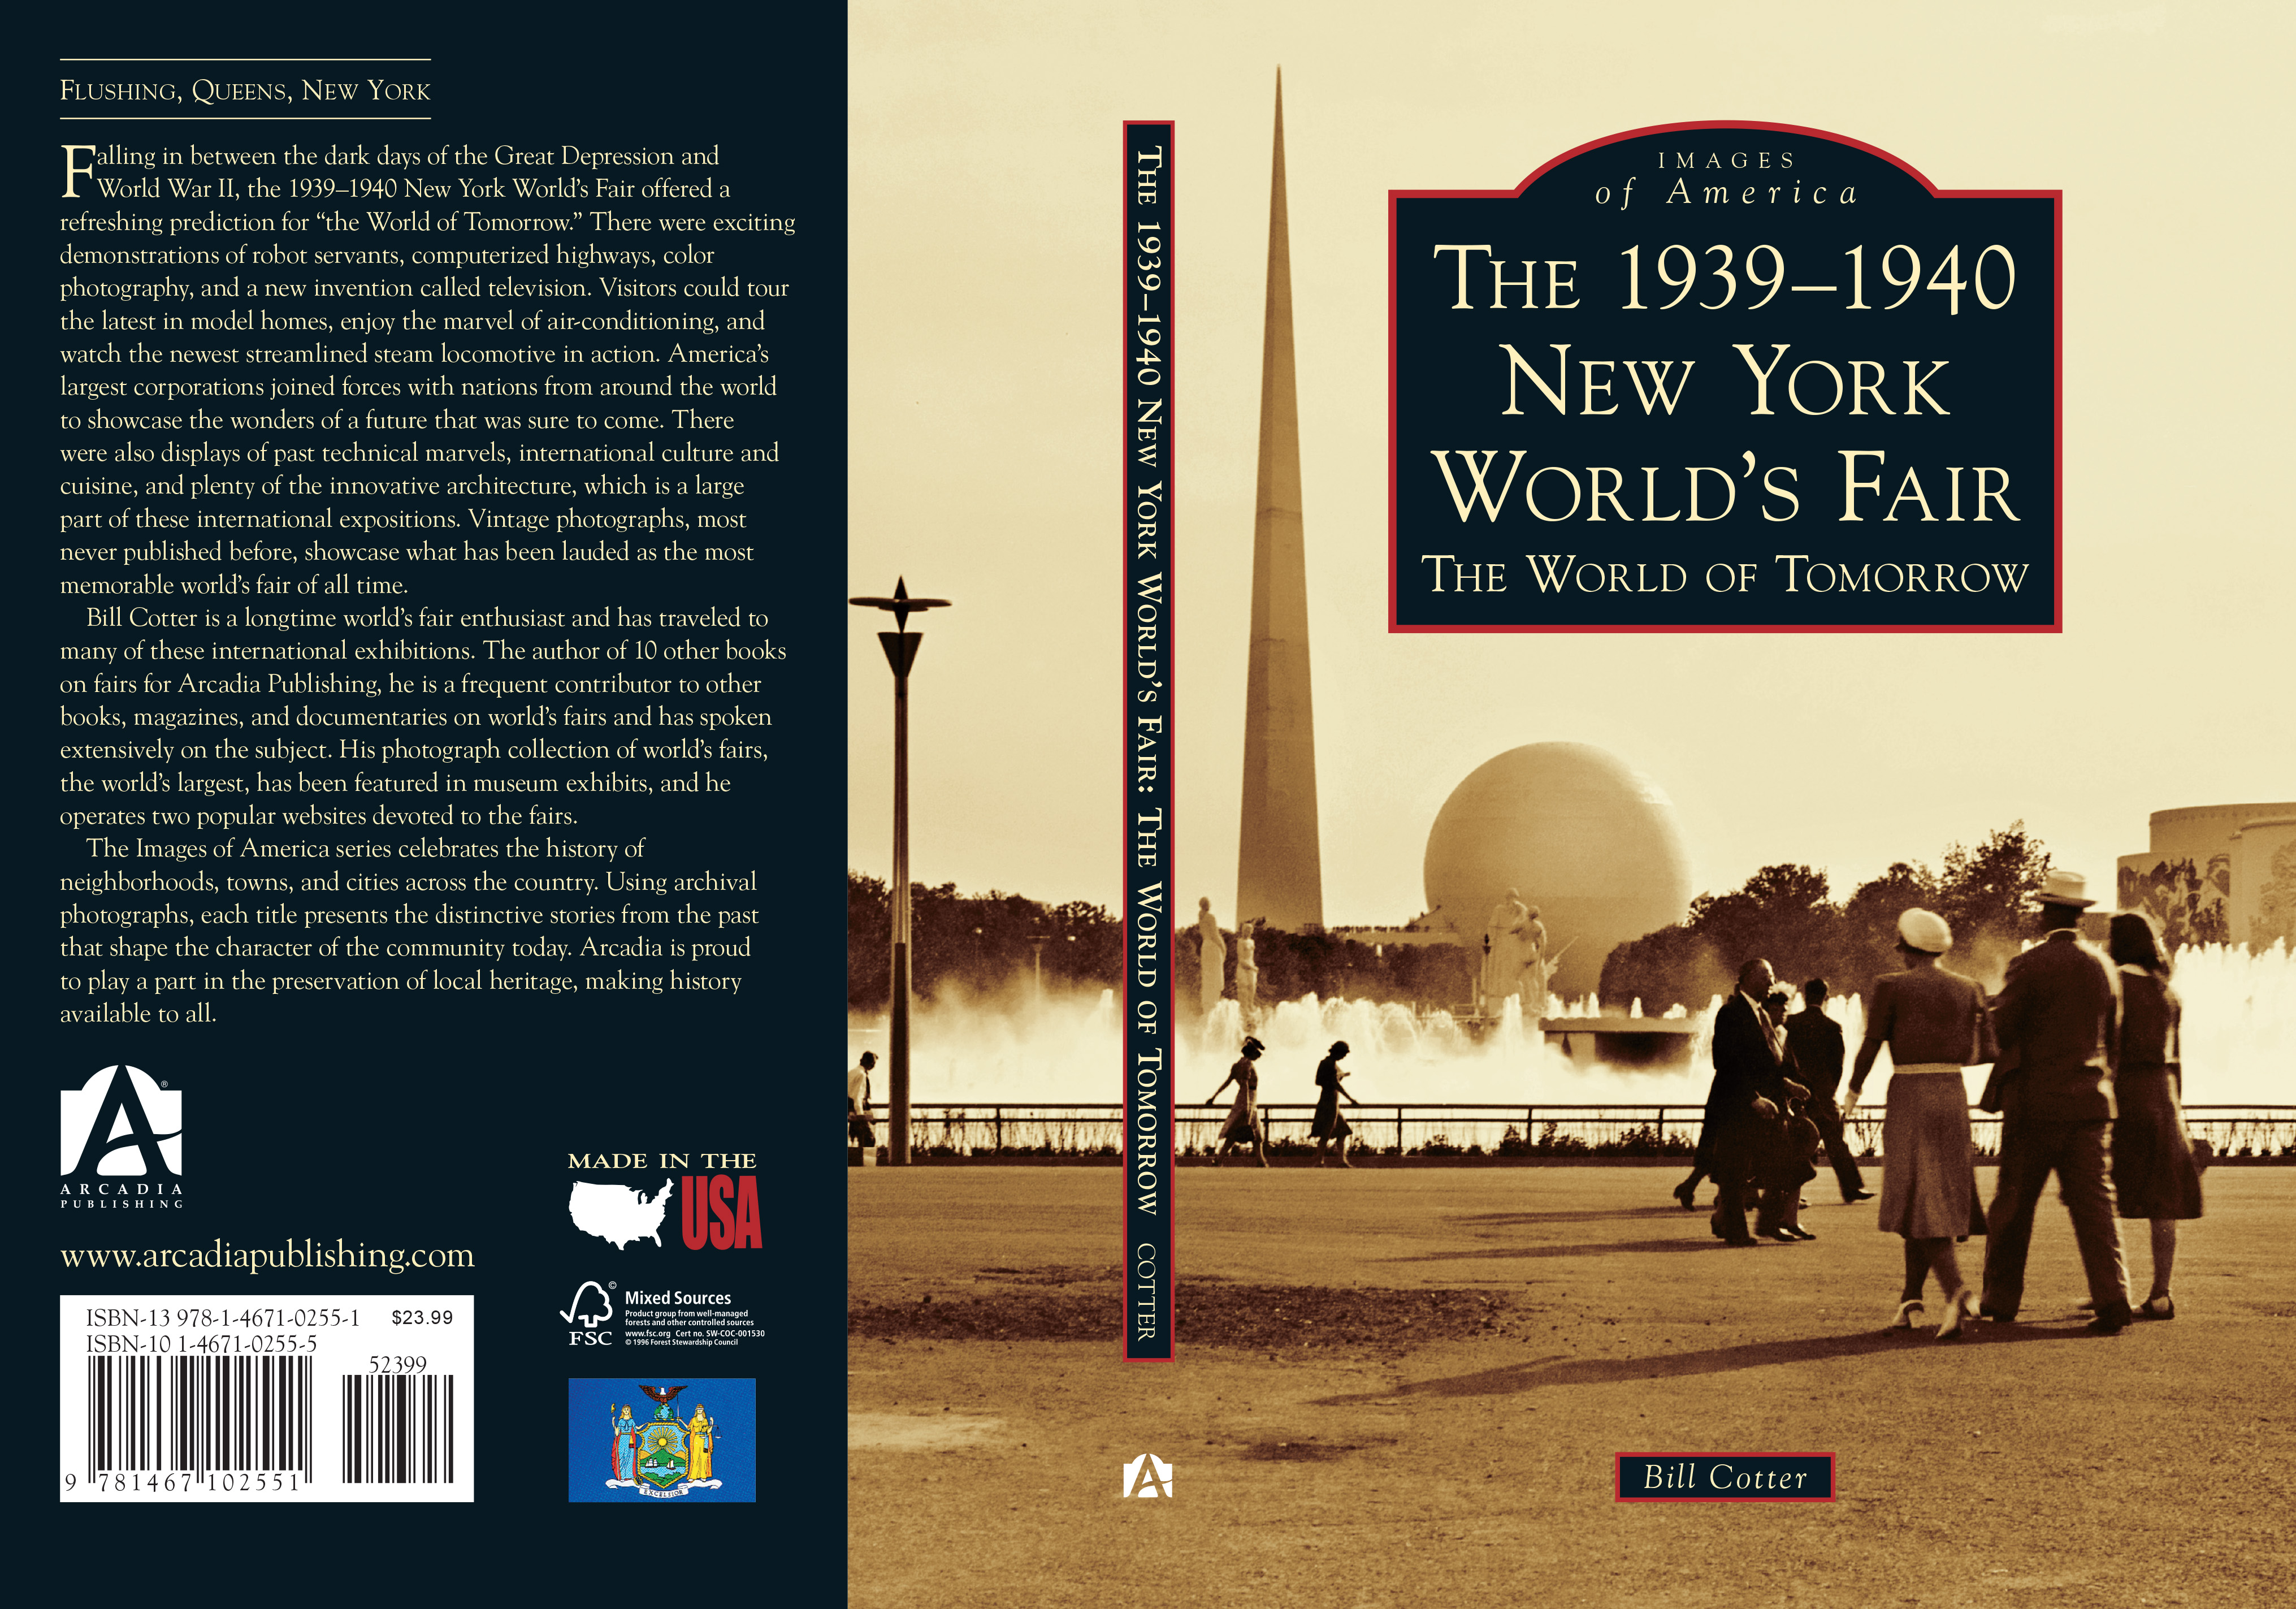 book-2-cover-1.jpg